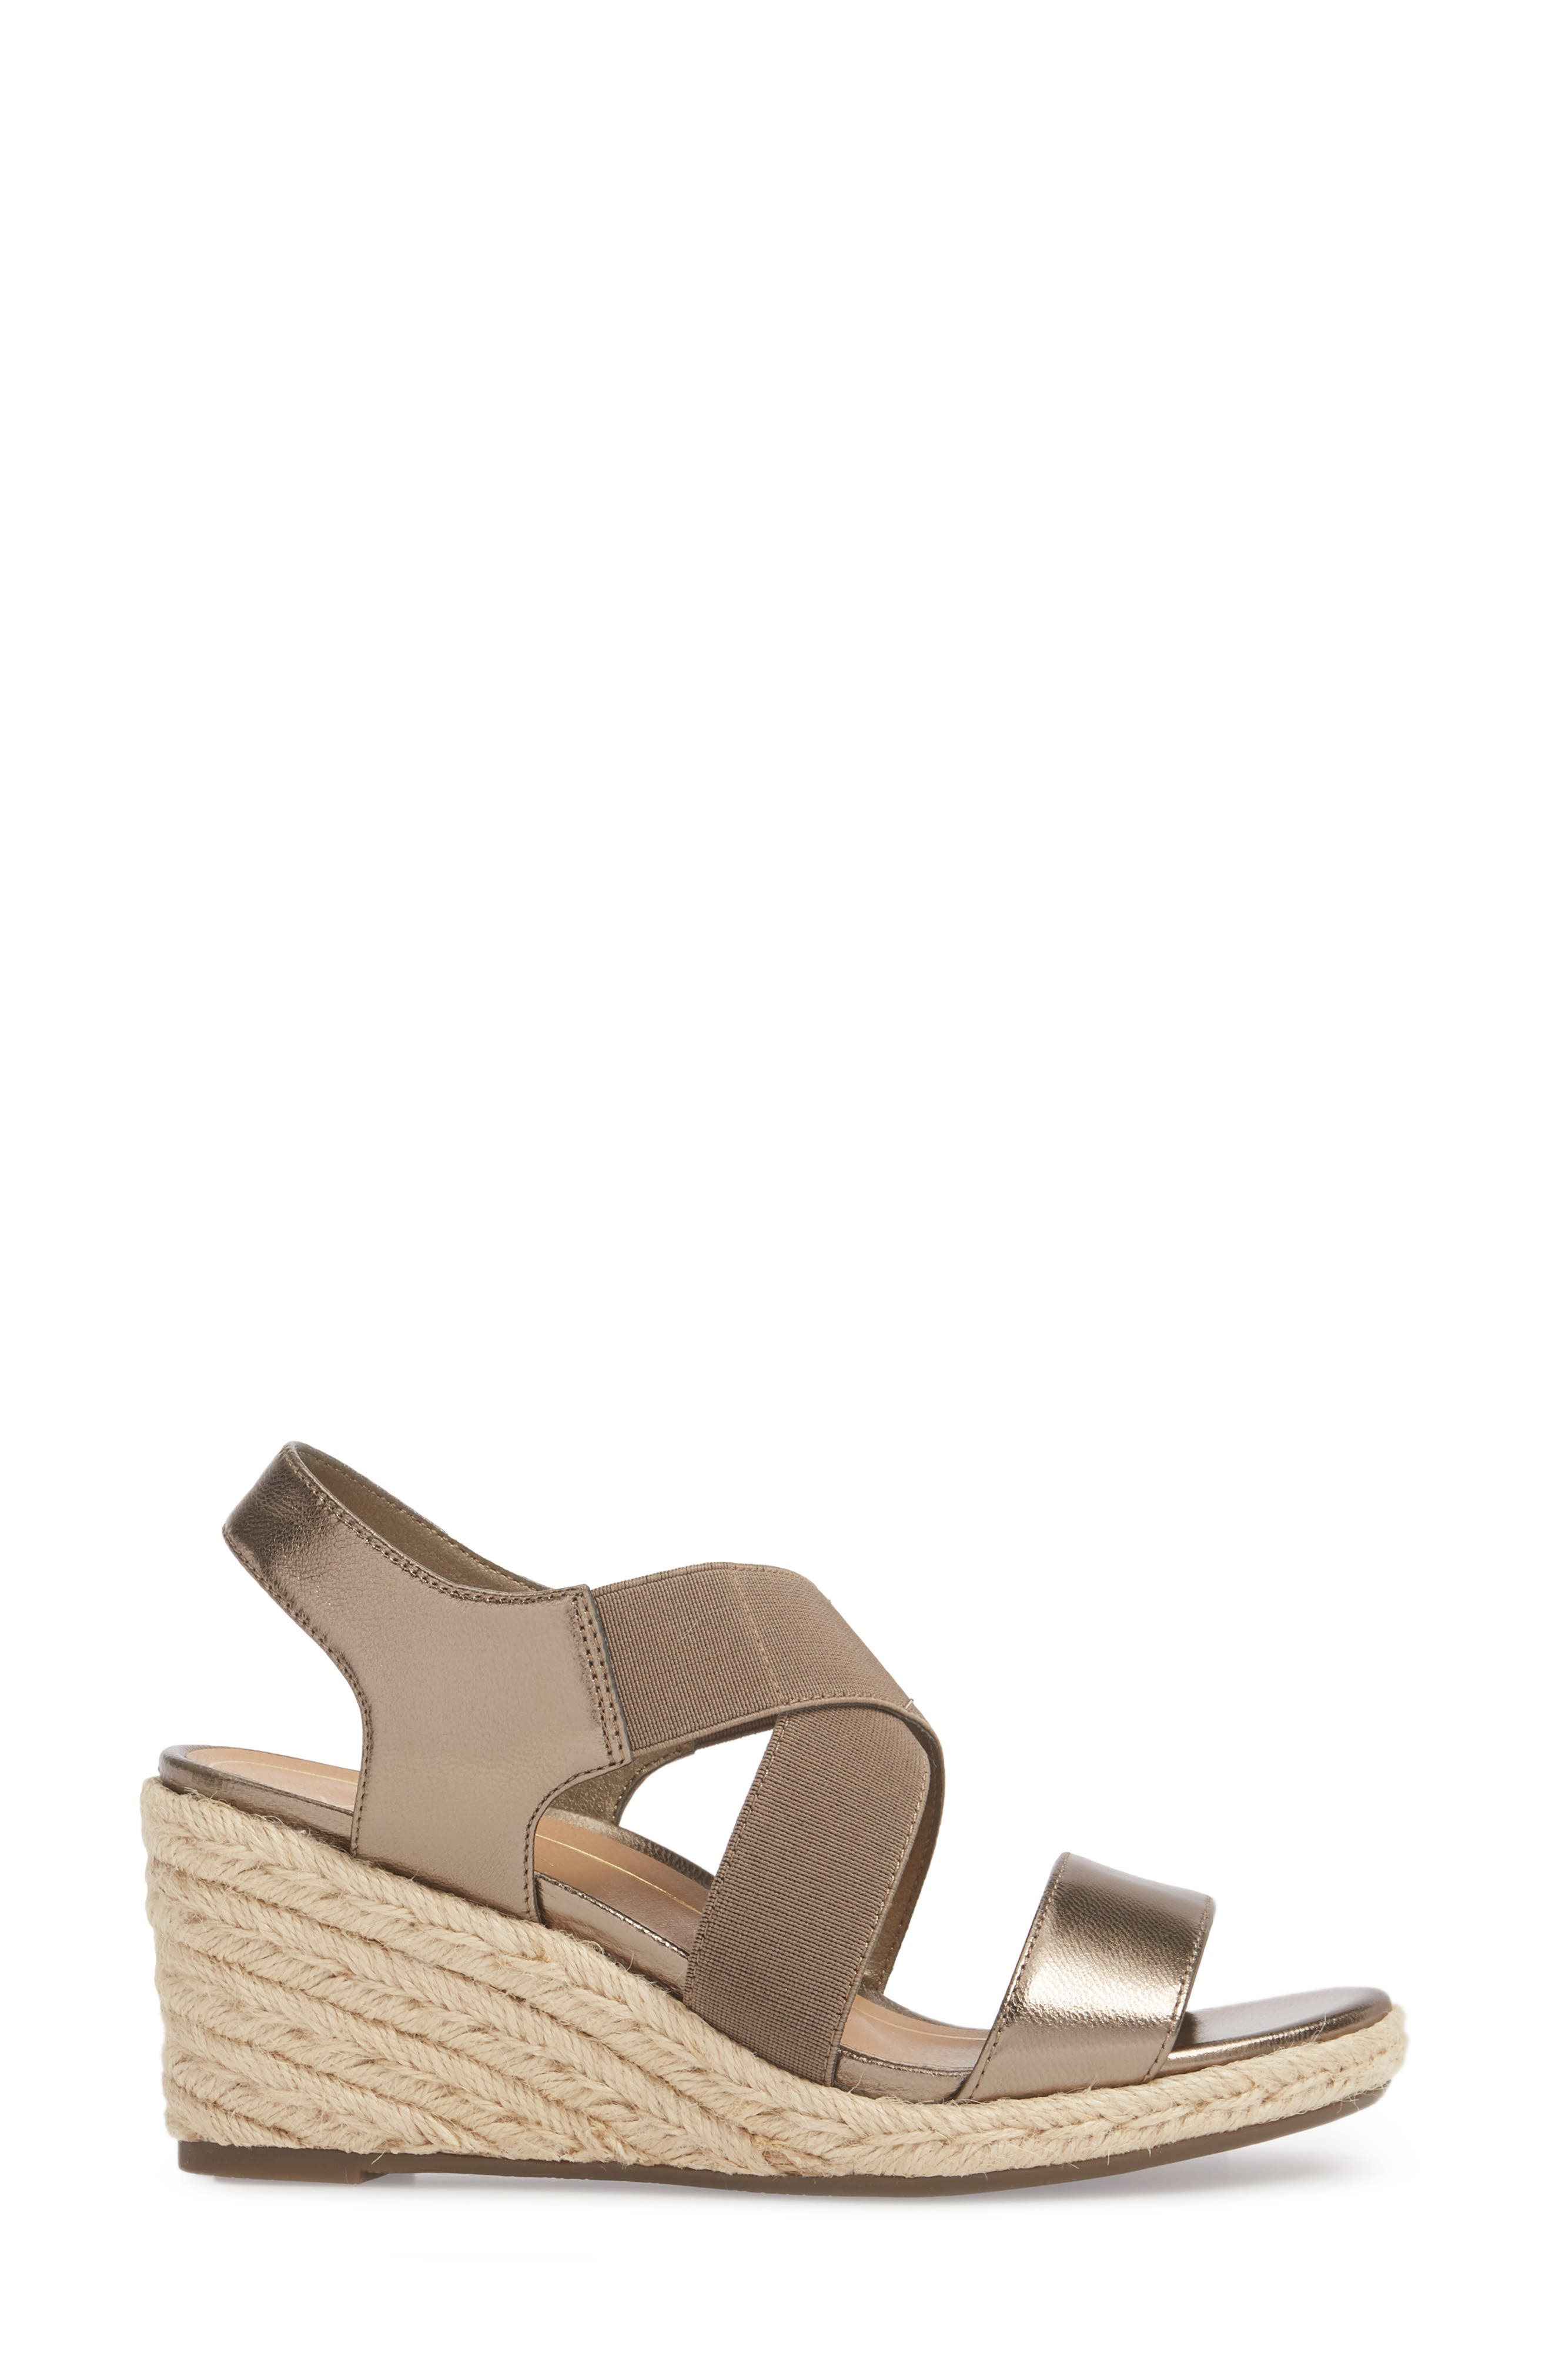 Ainsleigh Wedge Sandal,                             Alternate thumbnail 3, color,                             Dark Taupe Leather